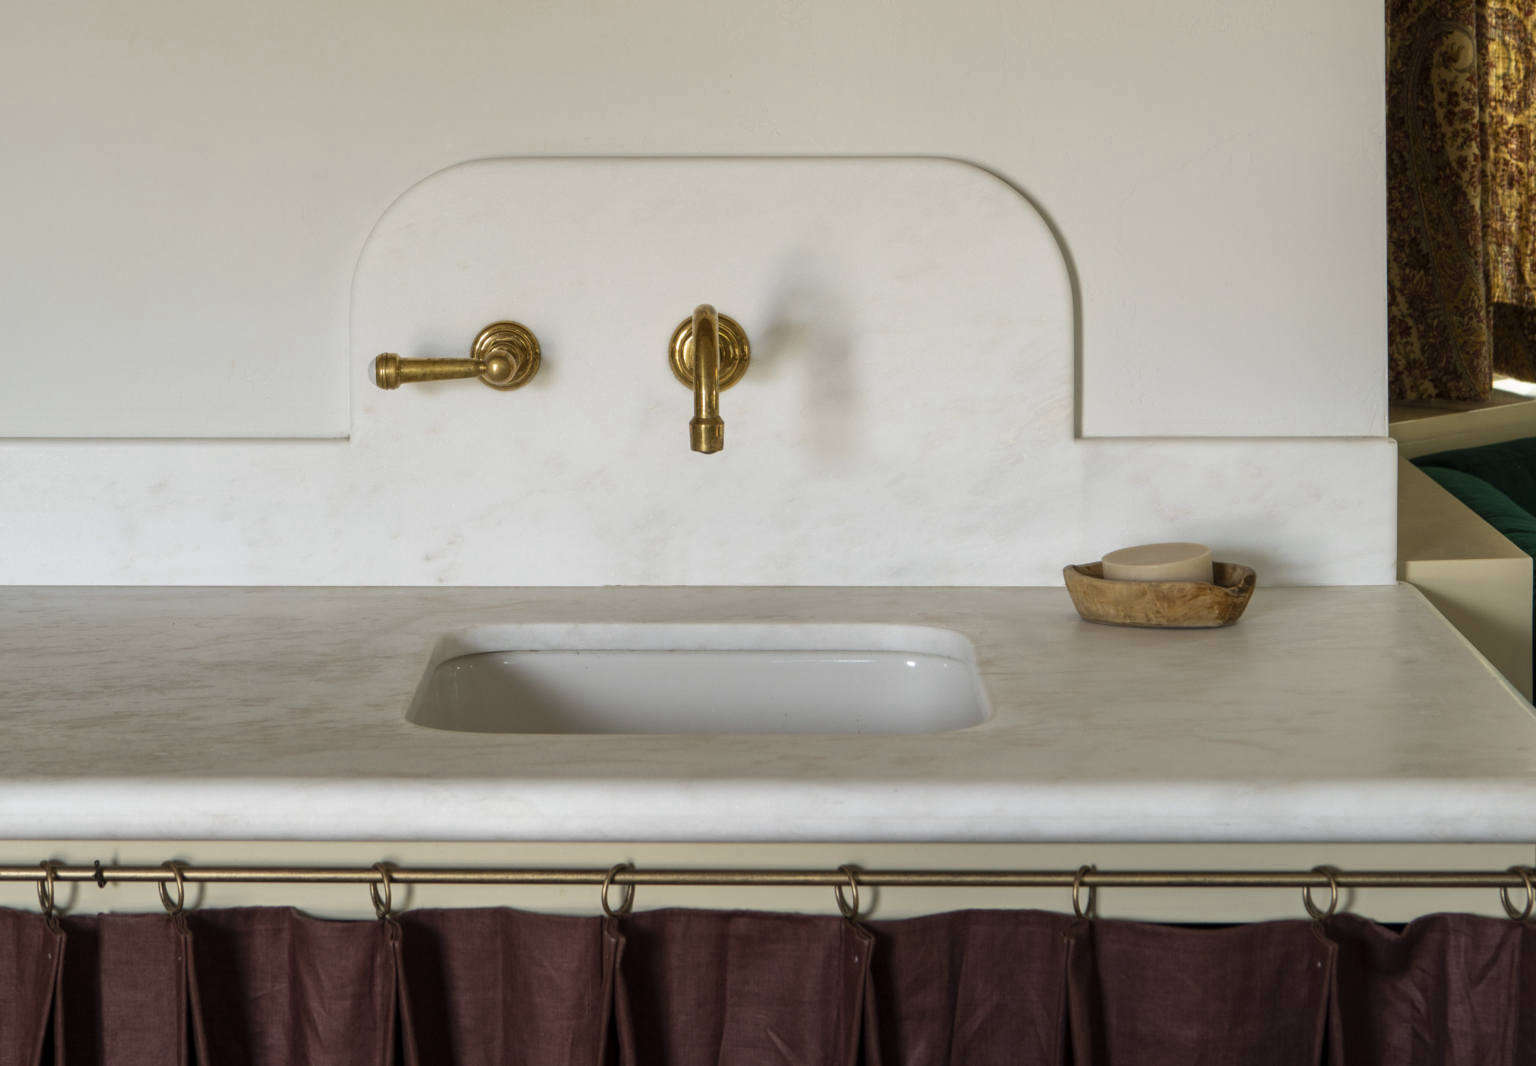 curved backsplashes in the kitchen and bath